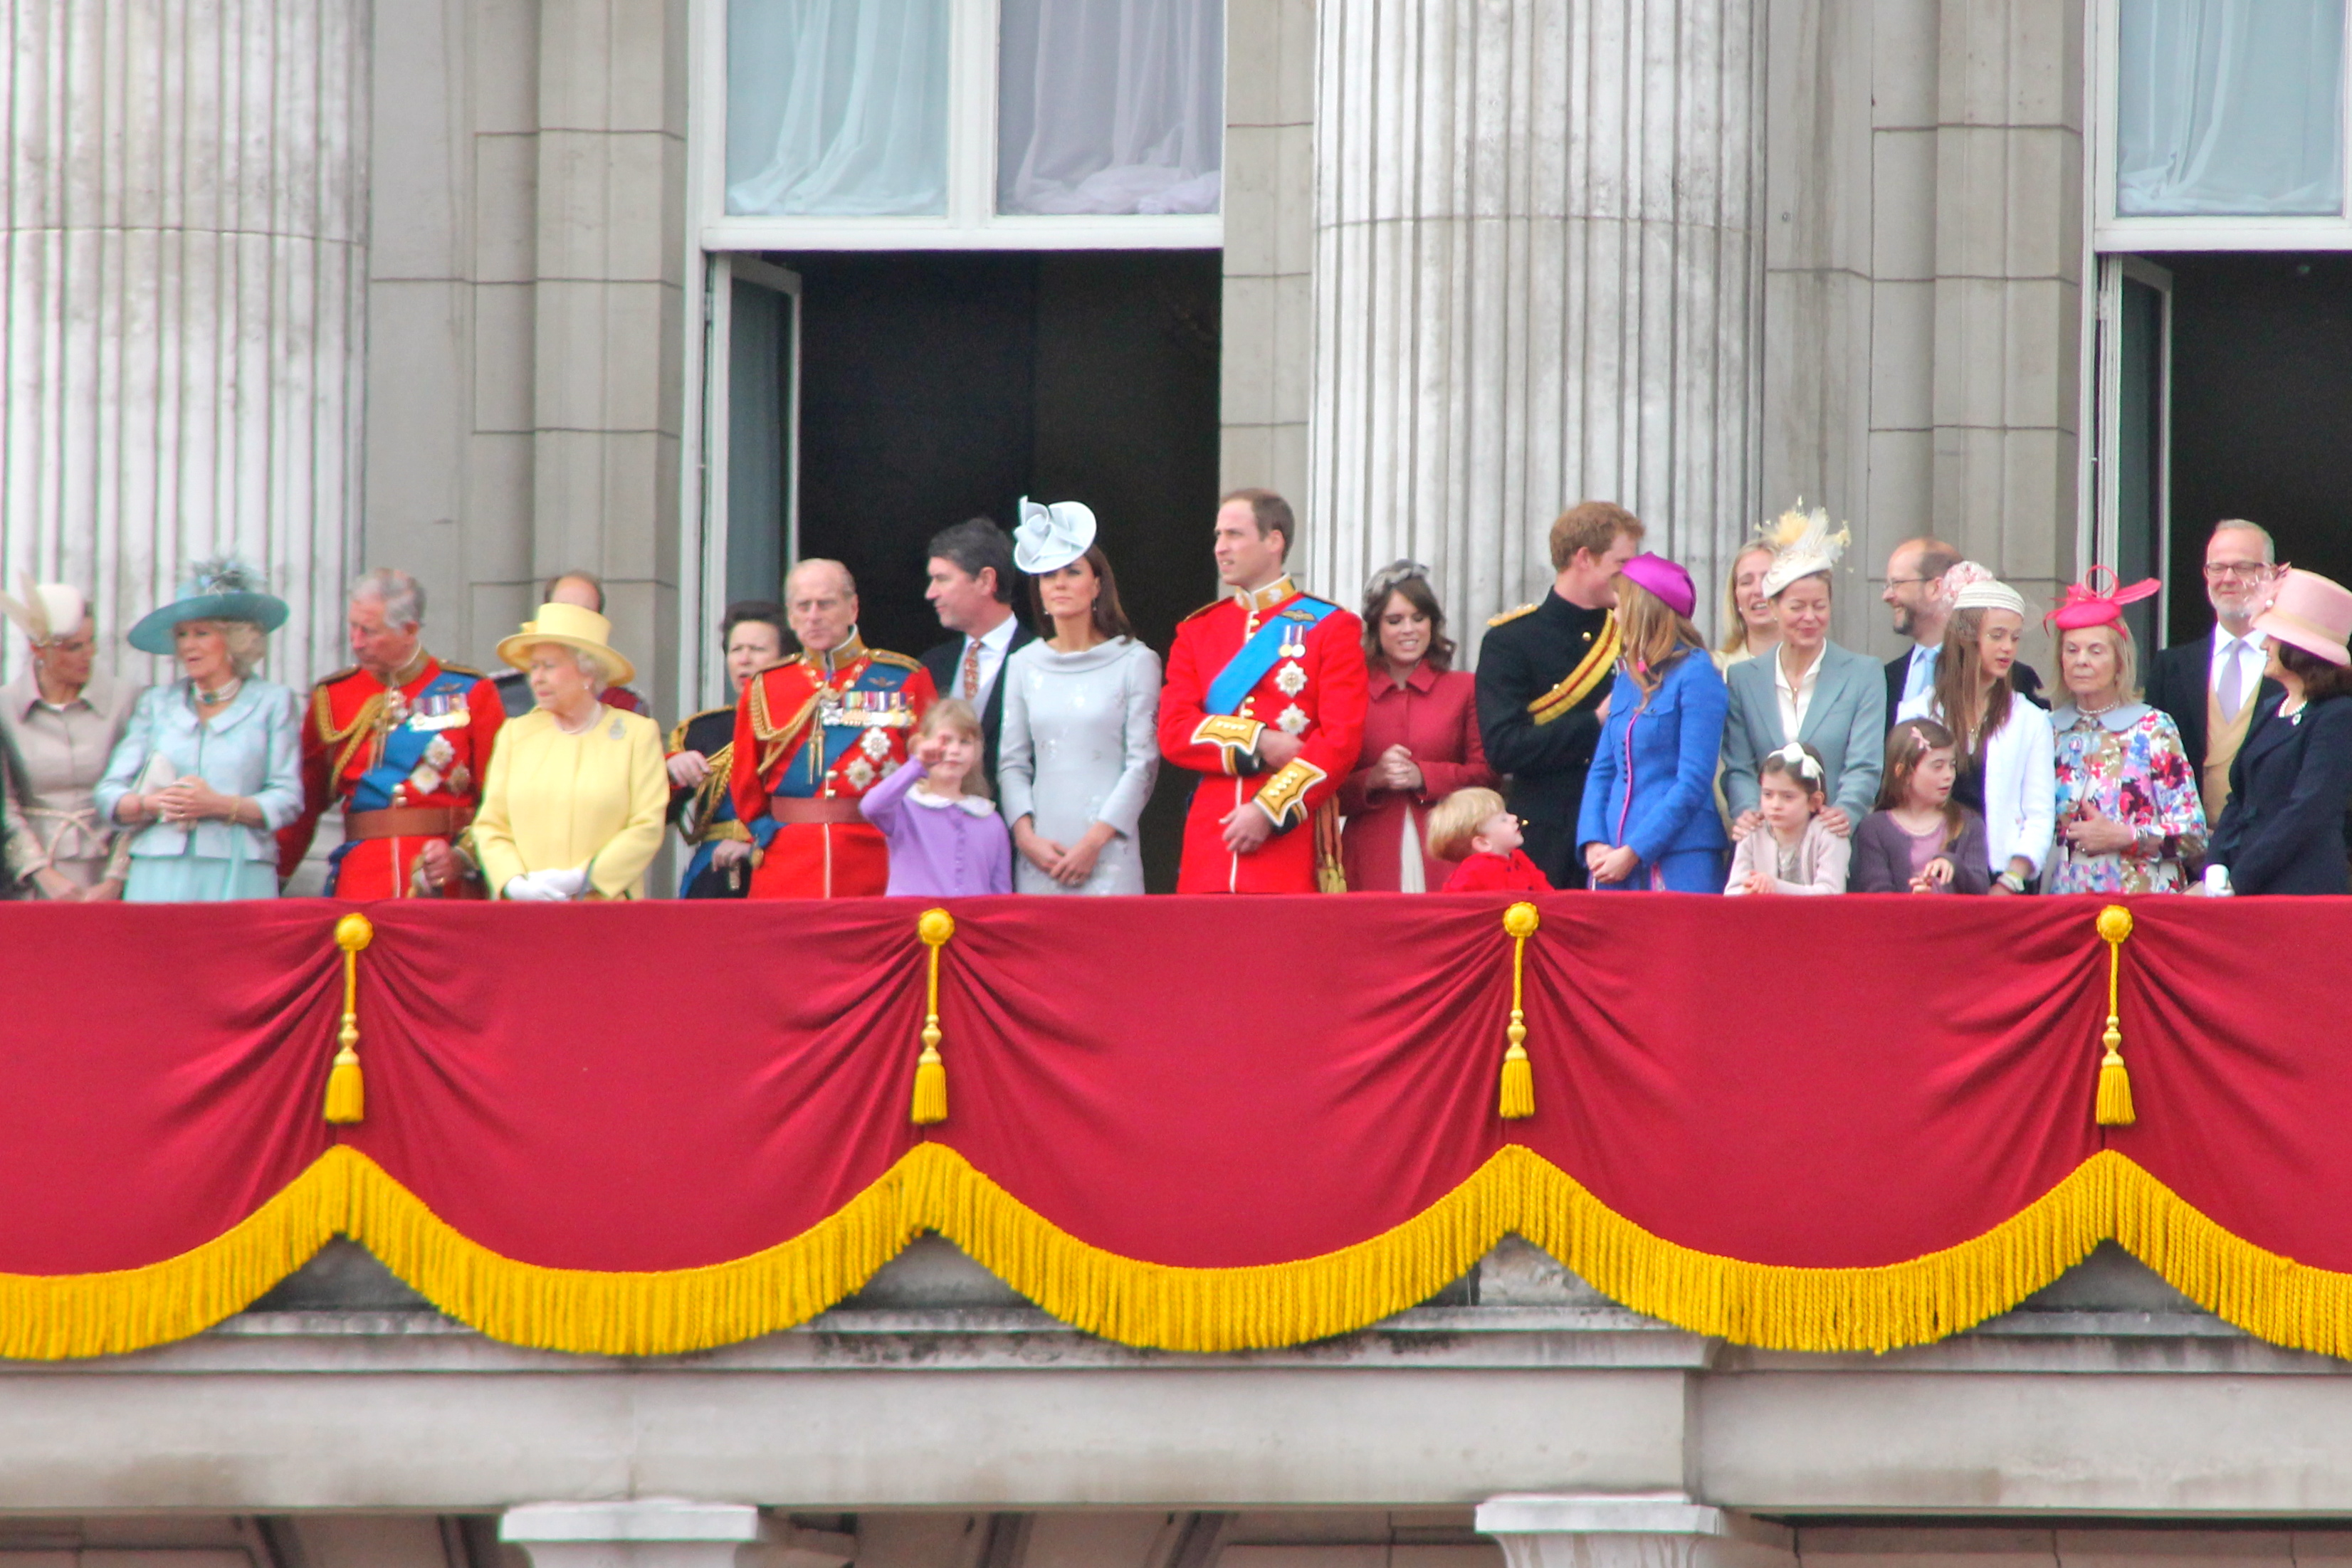 Royal family on the balcony for English balcony